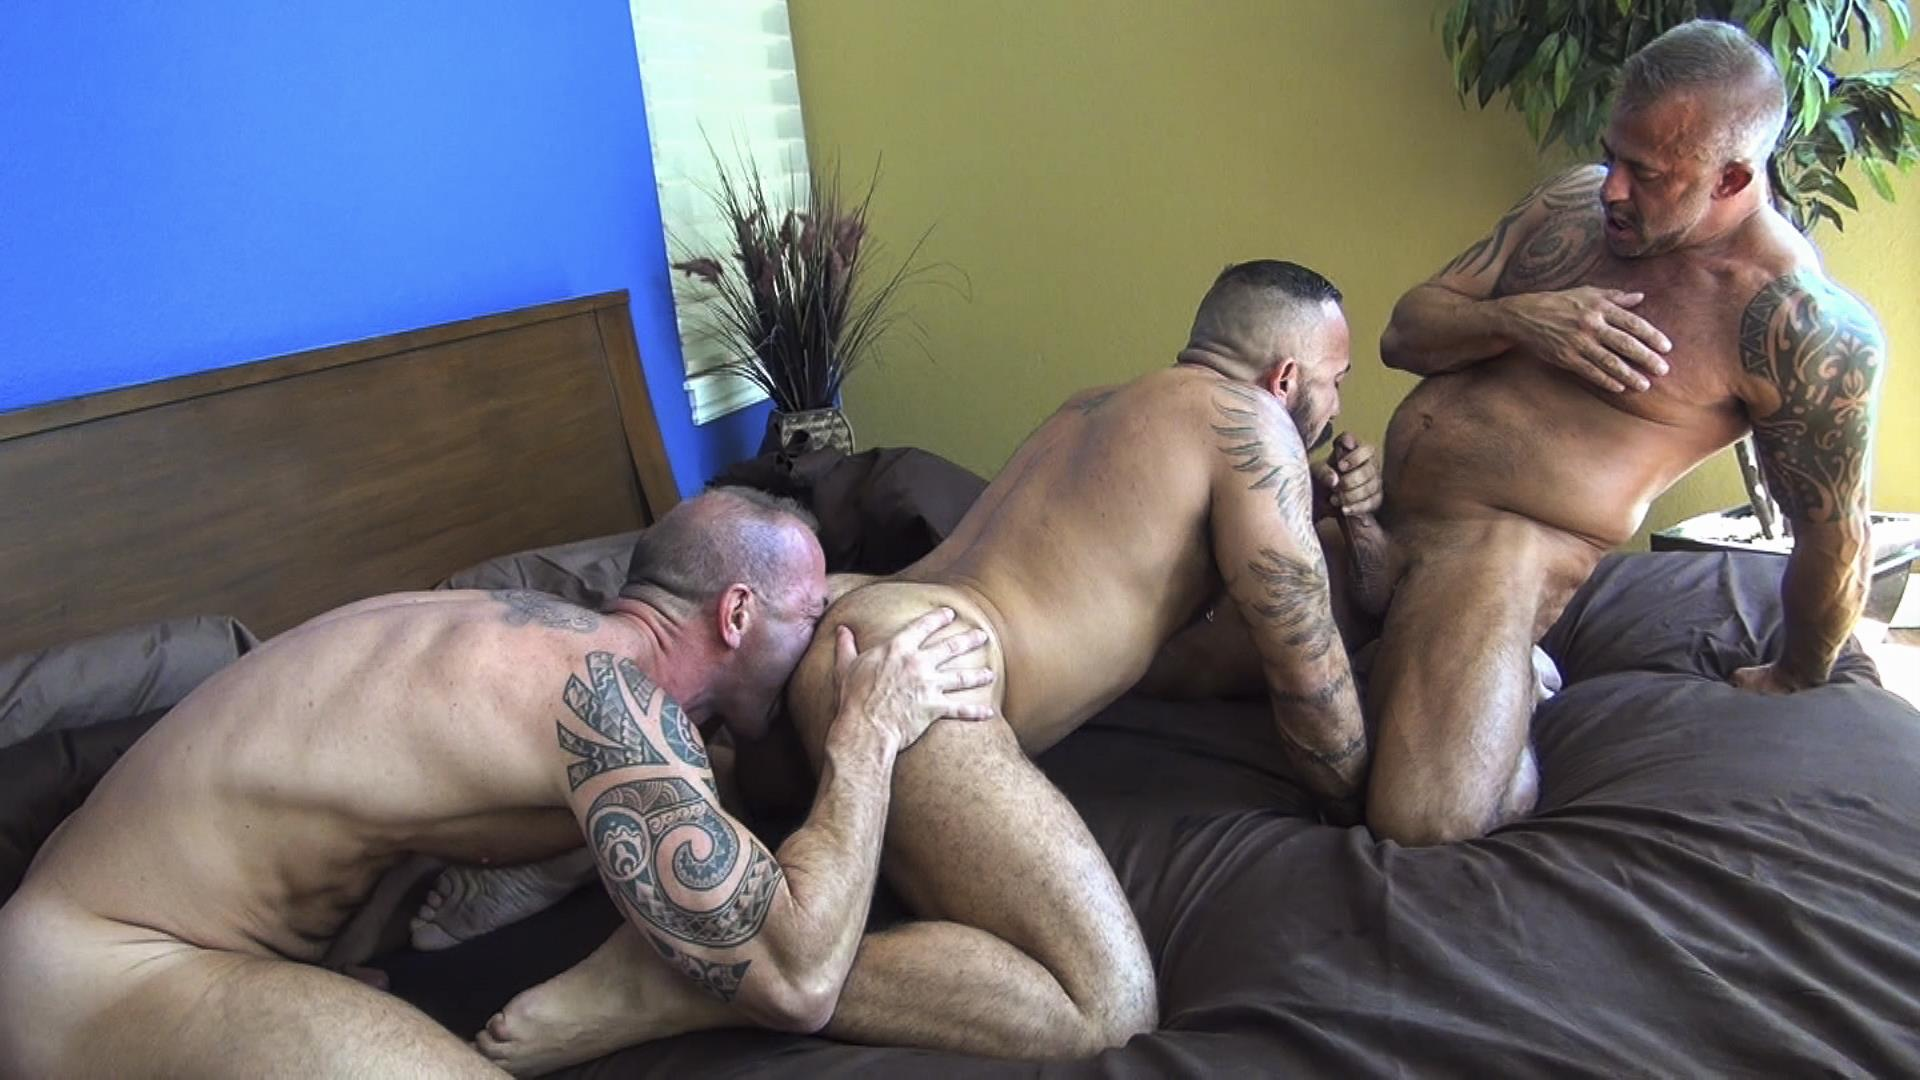 Raw Fuck Club Alessio Romero and Jon Galt and Vic Rocco Hairy Muscle Daddy Bareback Amateur Gay Porn 7 Hairy Muscle Daddy Threeway Double Bareback Penetration